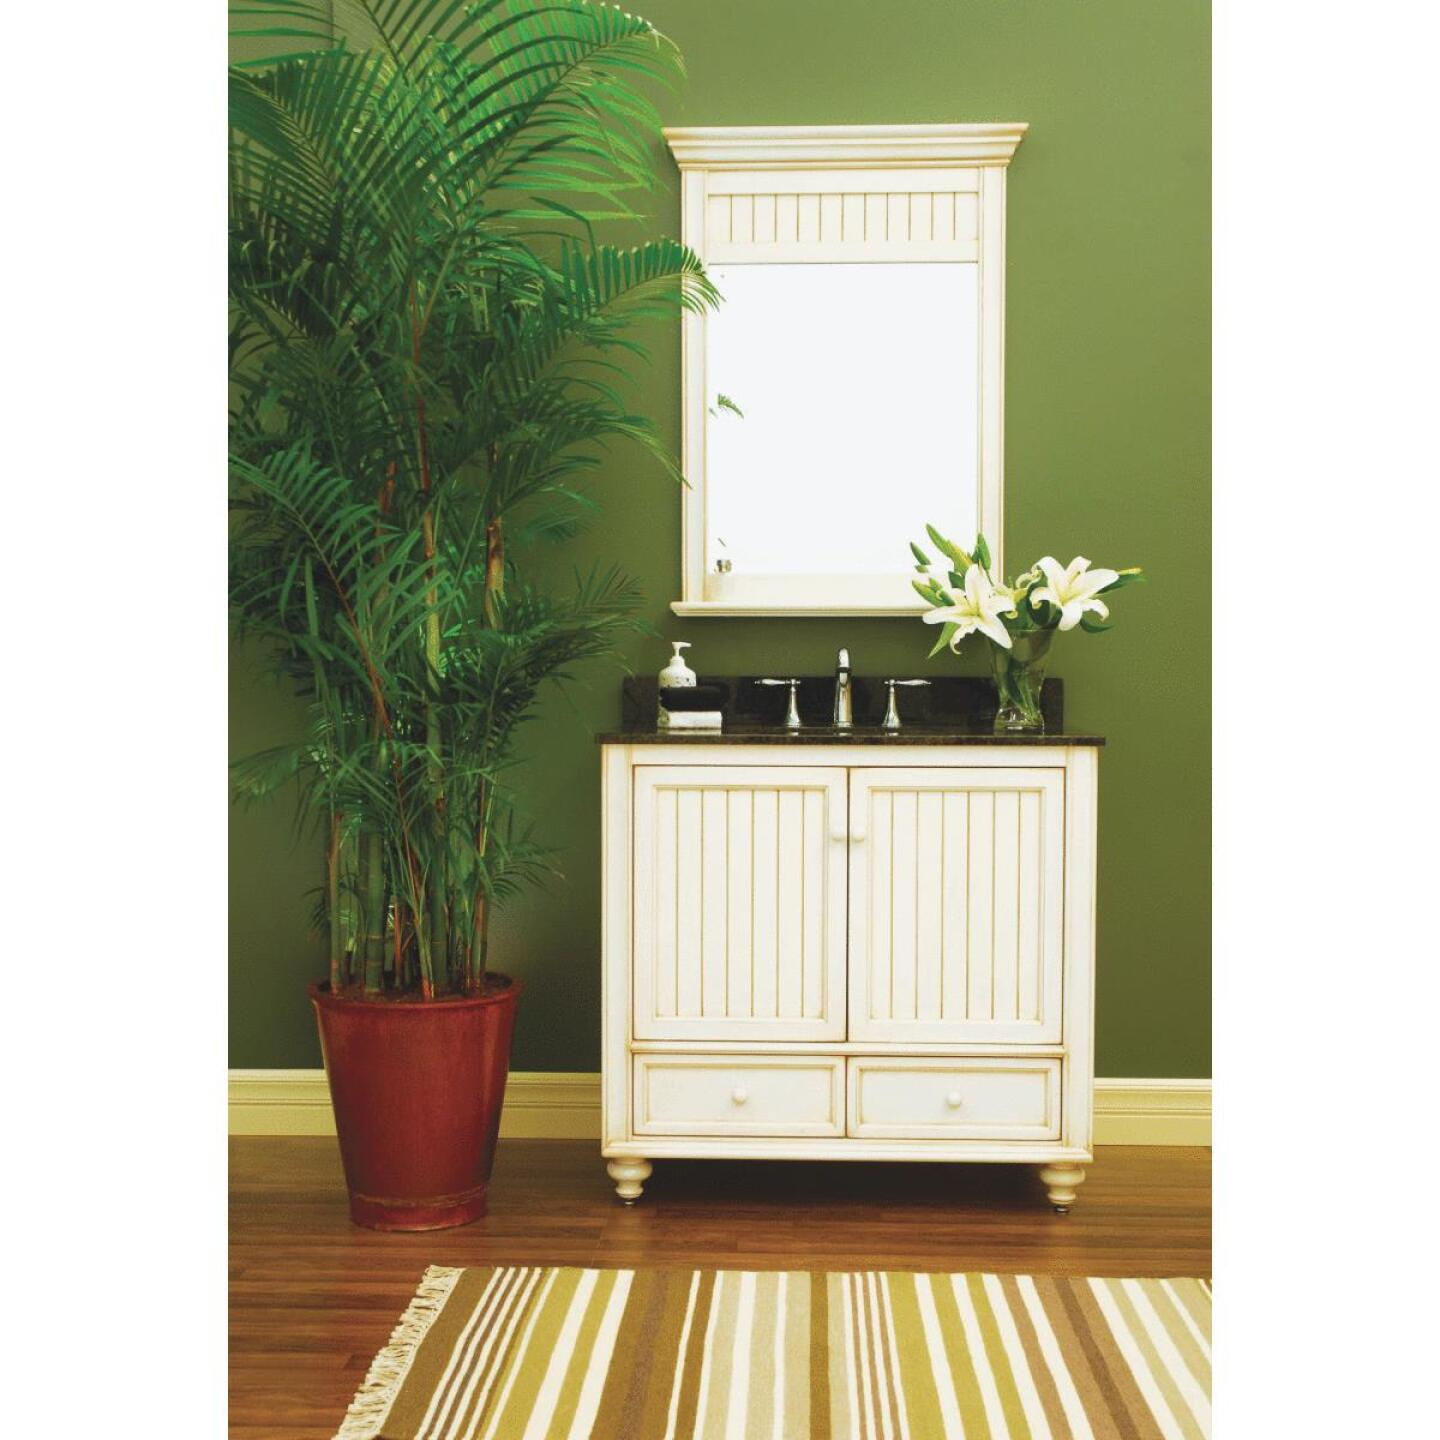 Sunny Wood Bristol Beach White 30 In. W x 34 In. H x 21 In. D Vanity Base, 2 Door/1 Drawer Image 2